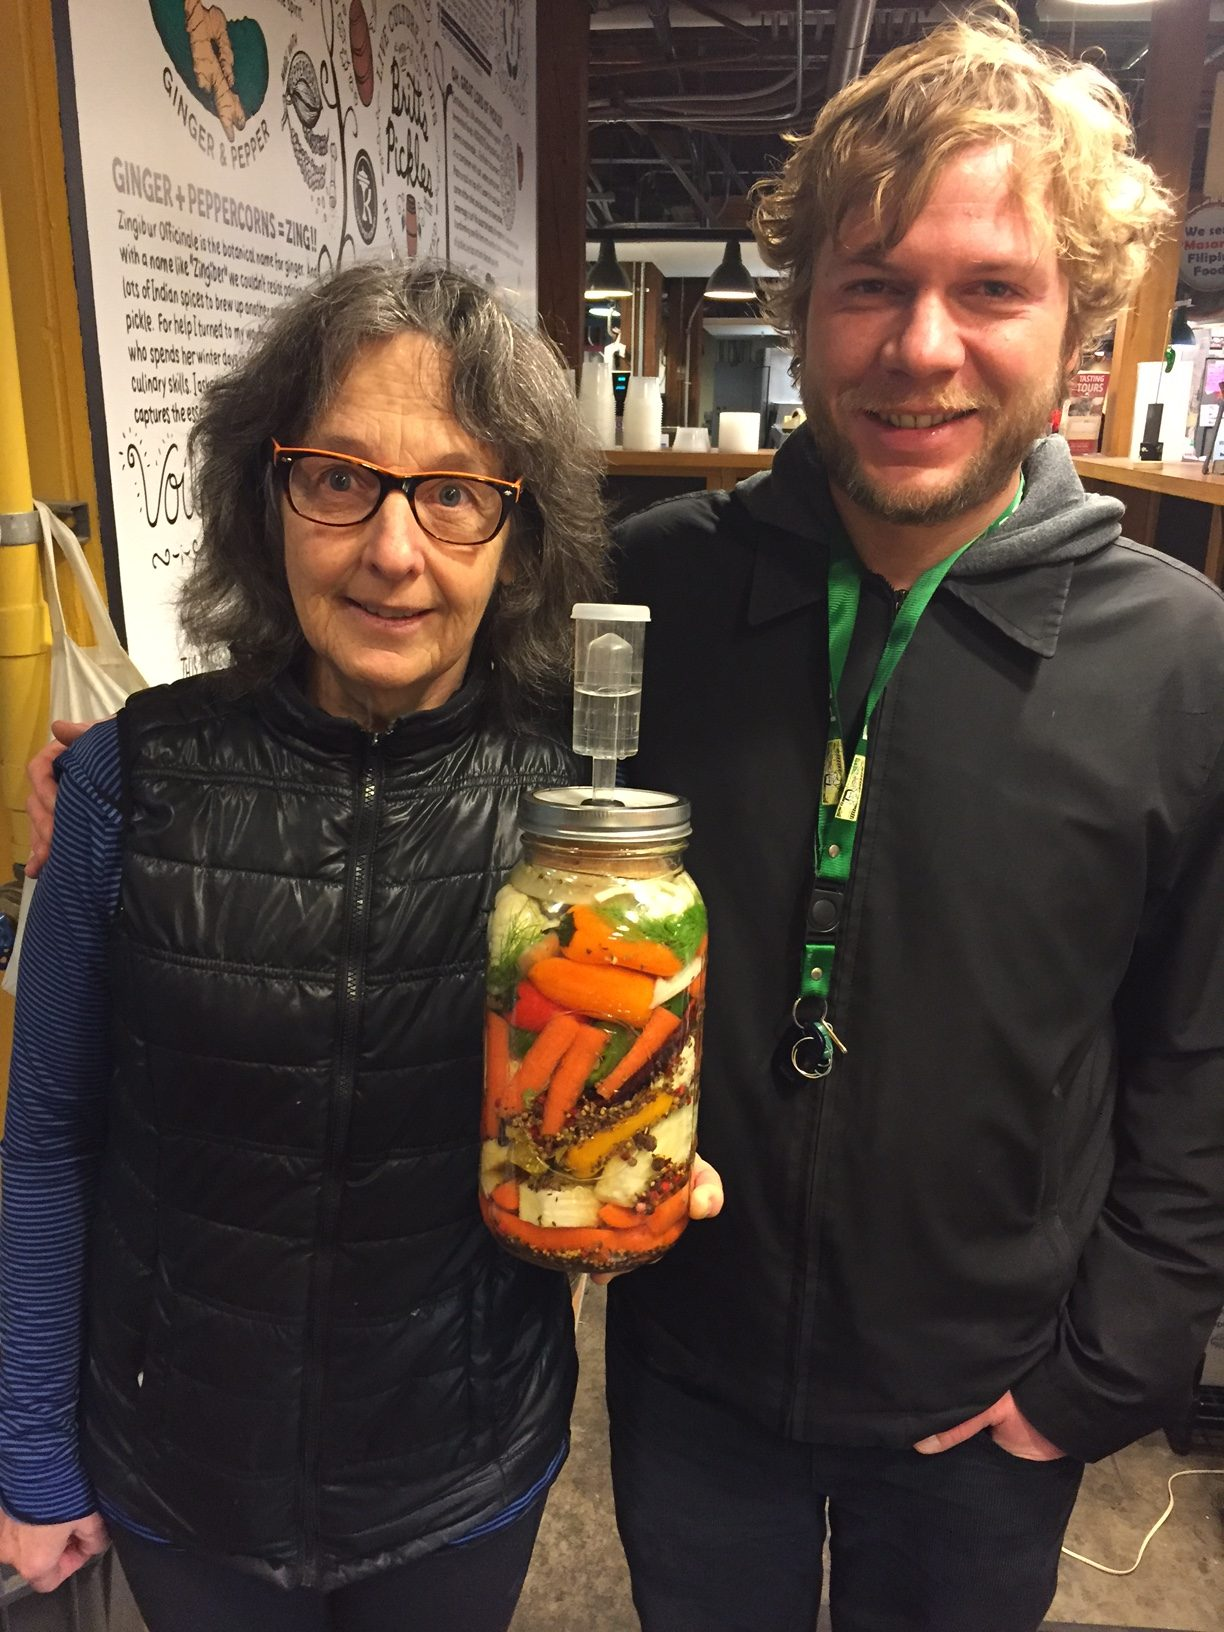 Andrew Berg and Adele Eustis from Britt's Pickles at Seattle's Pike Place Market